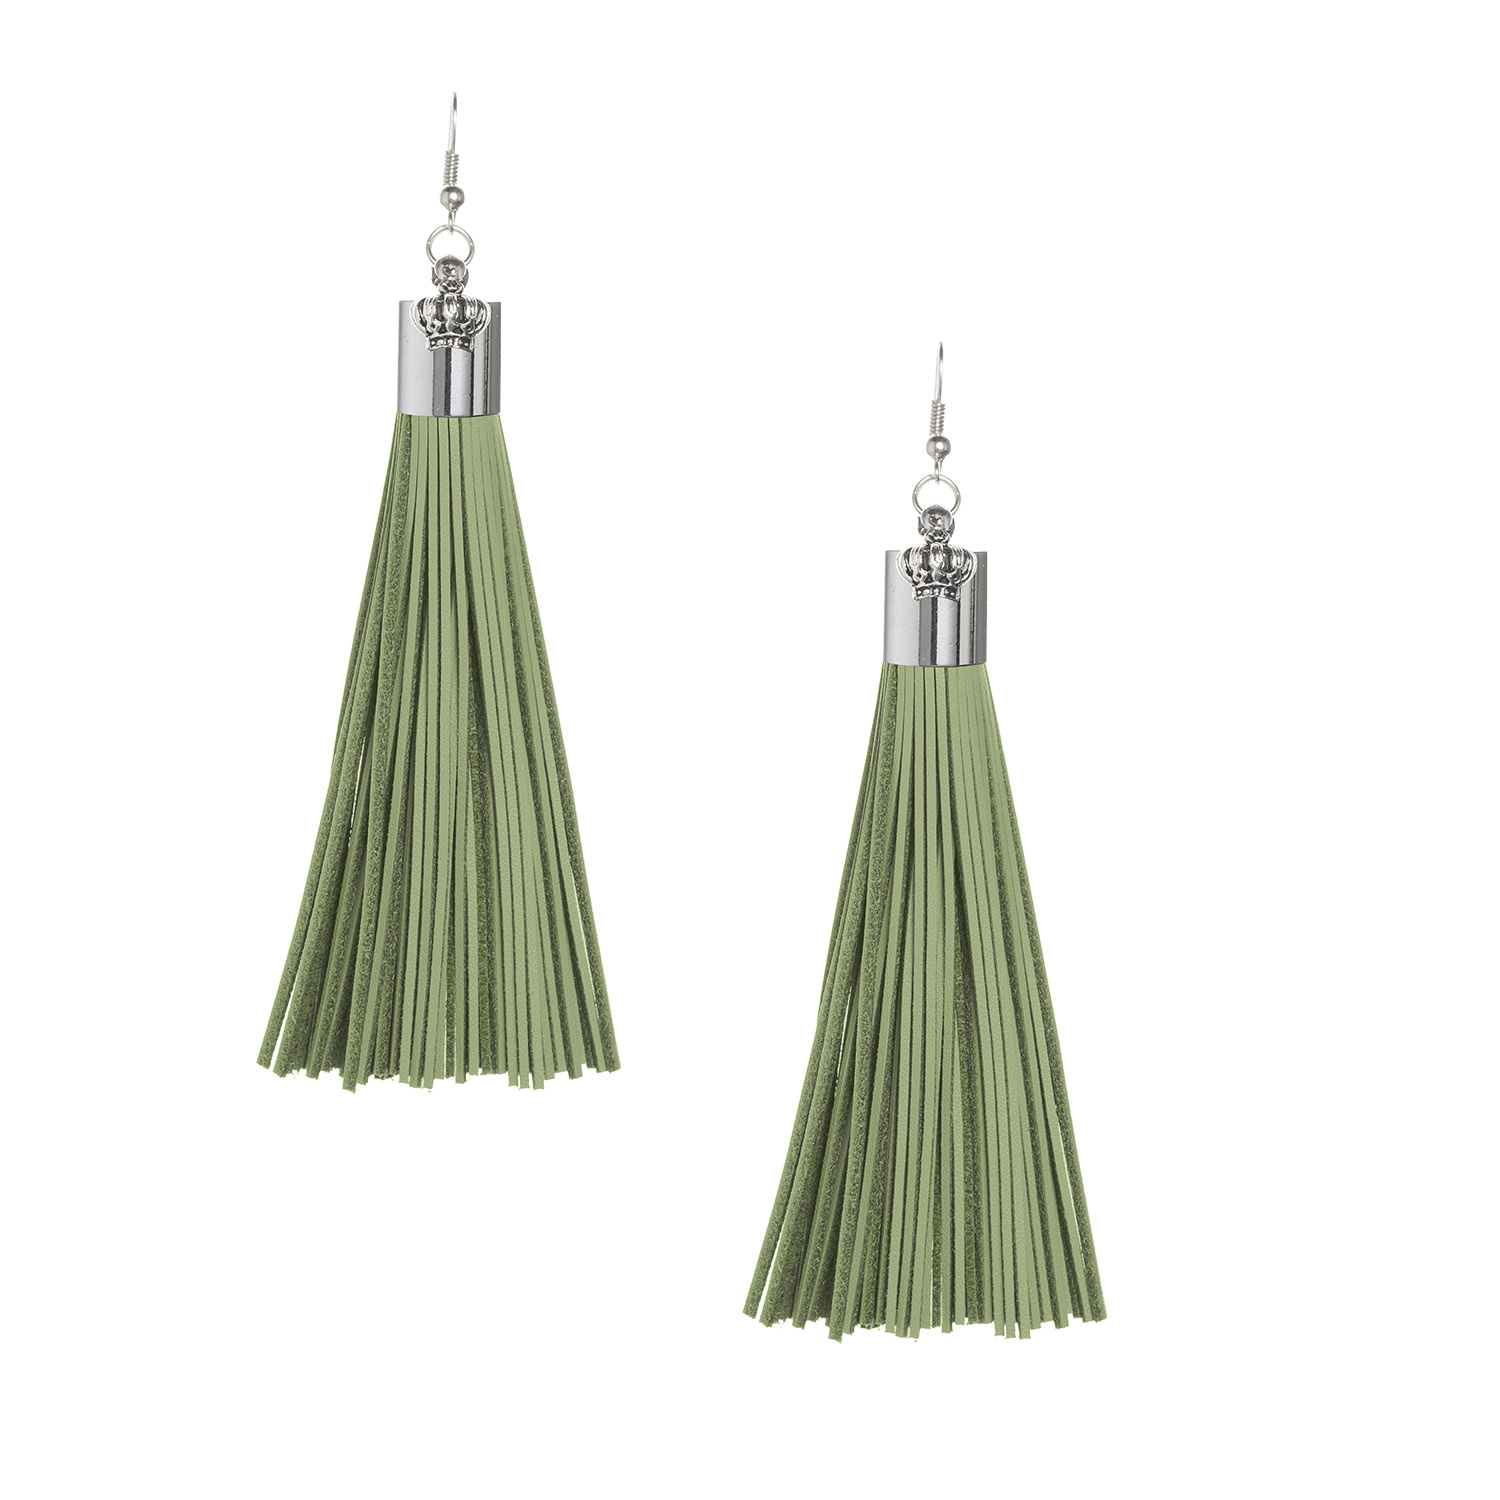 Olive Leather Tassel Earrings with Silver Cap